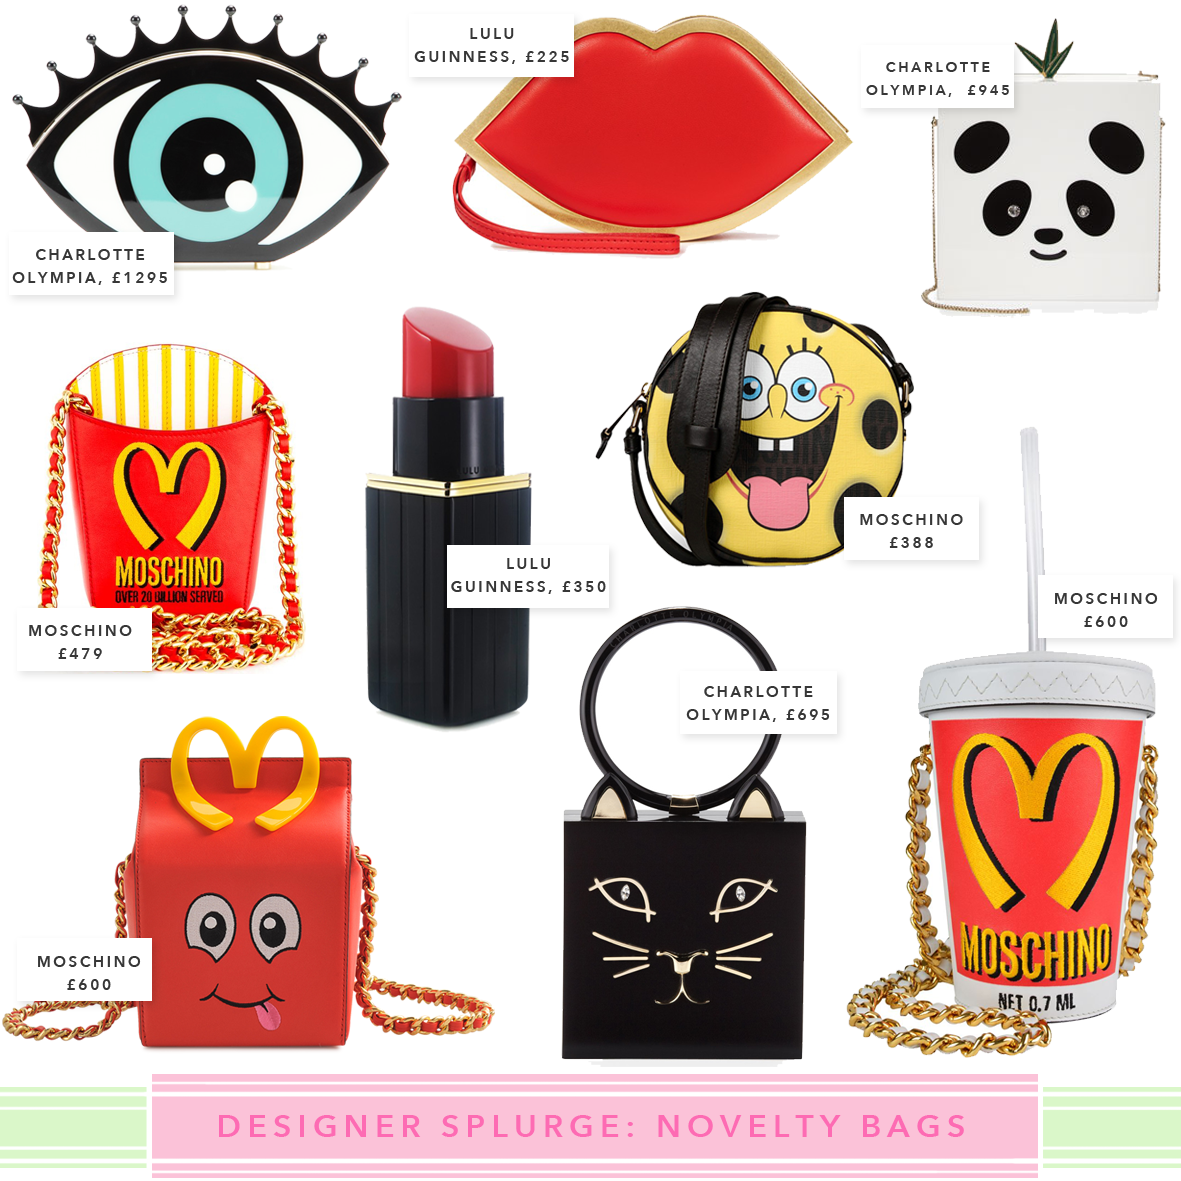 moschino fast food, quirky bags, novelty bags, quirky accessories